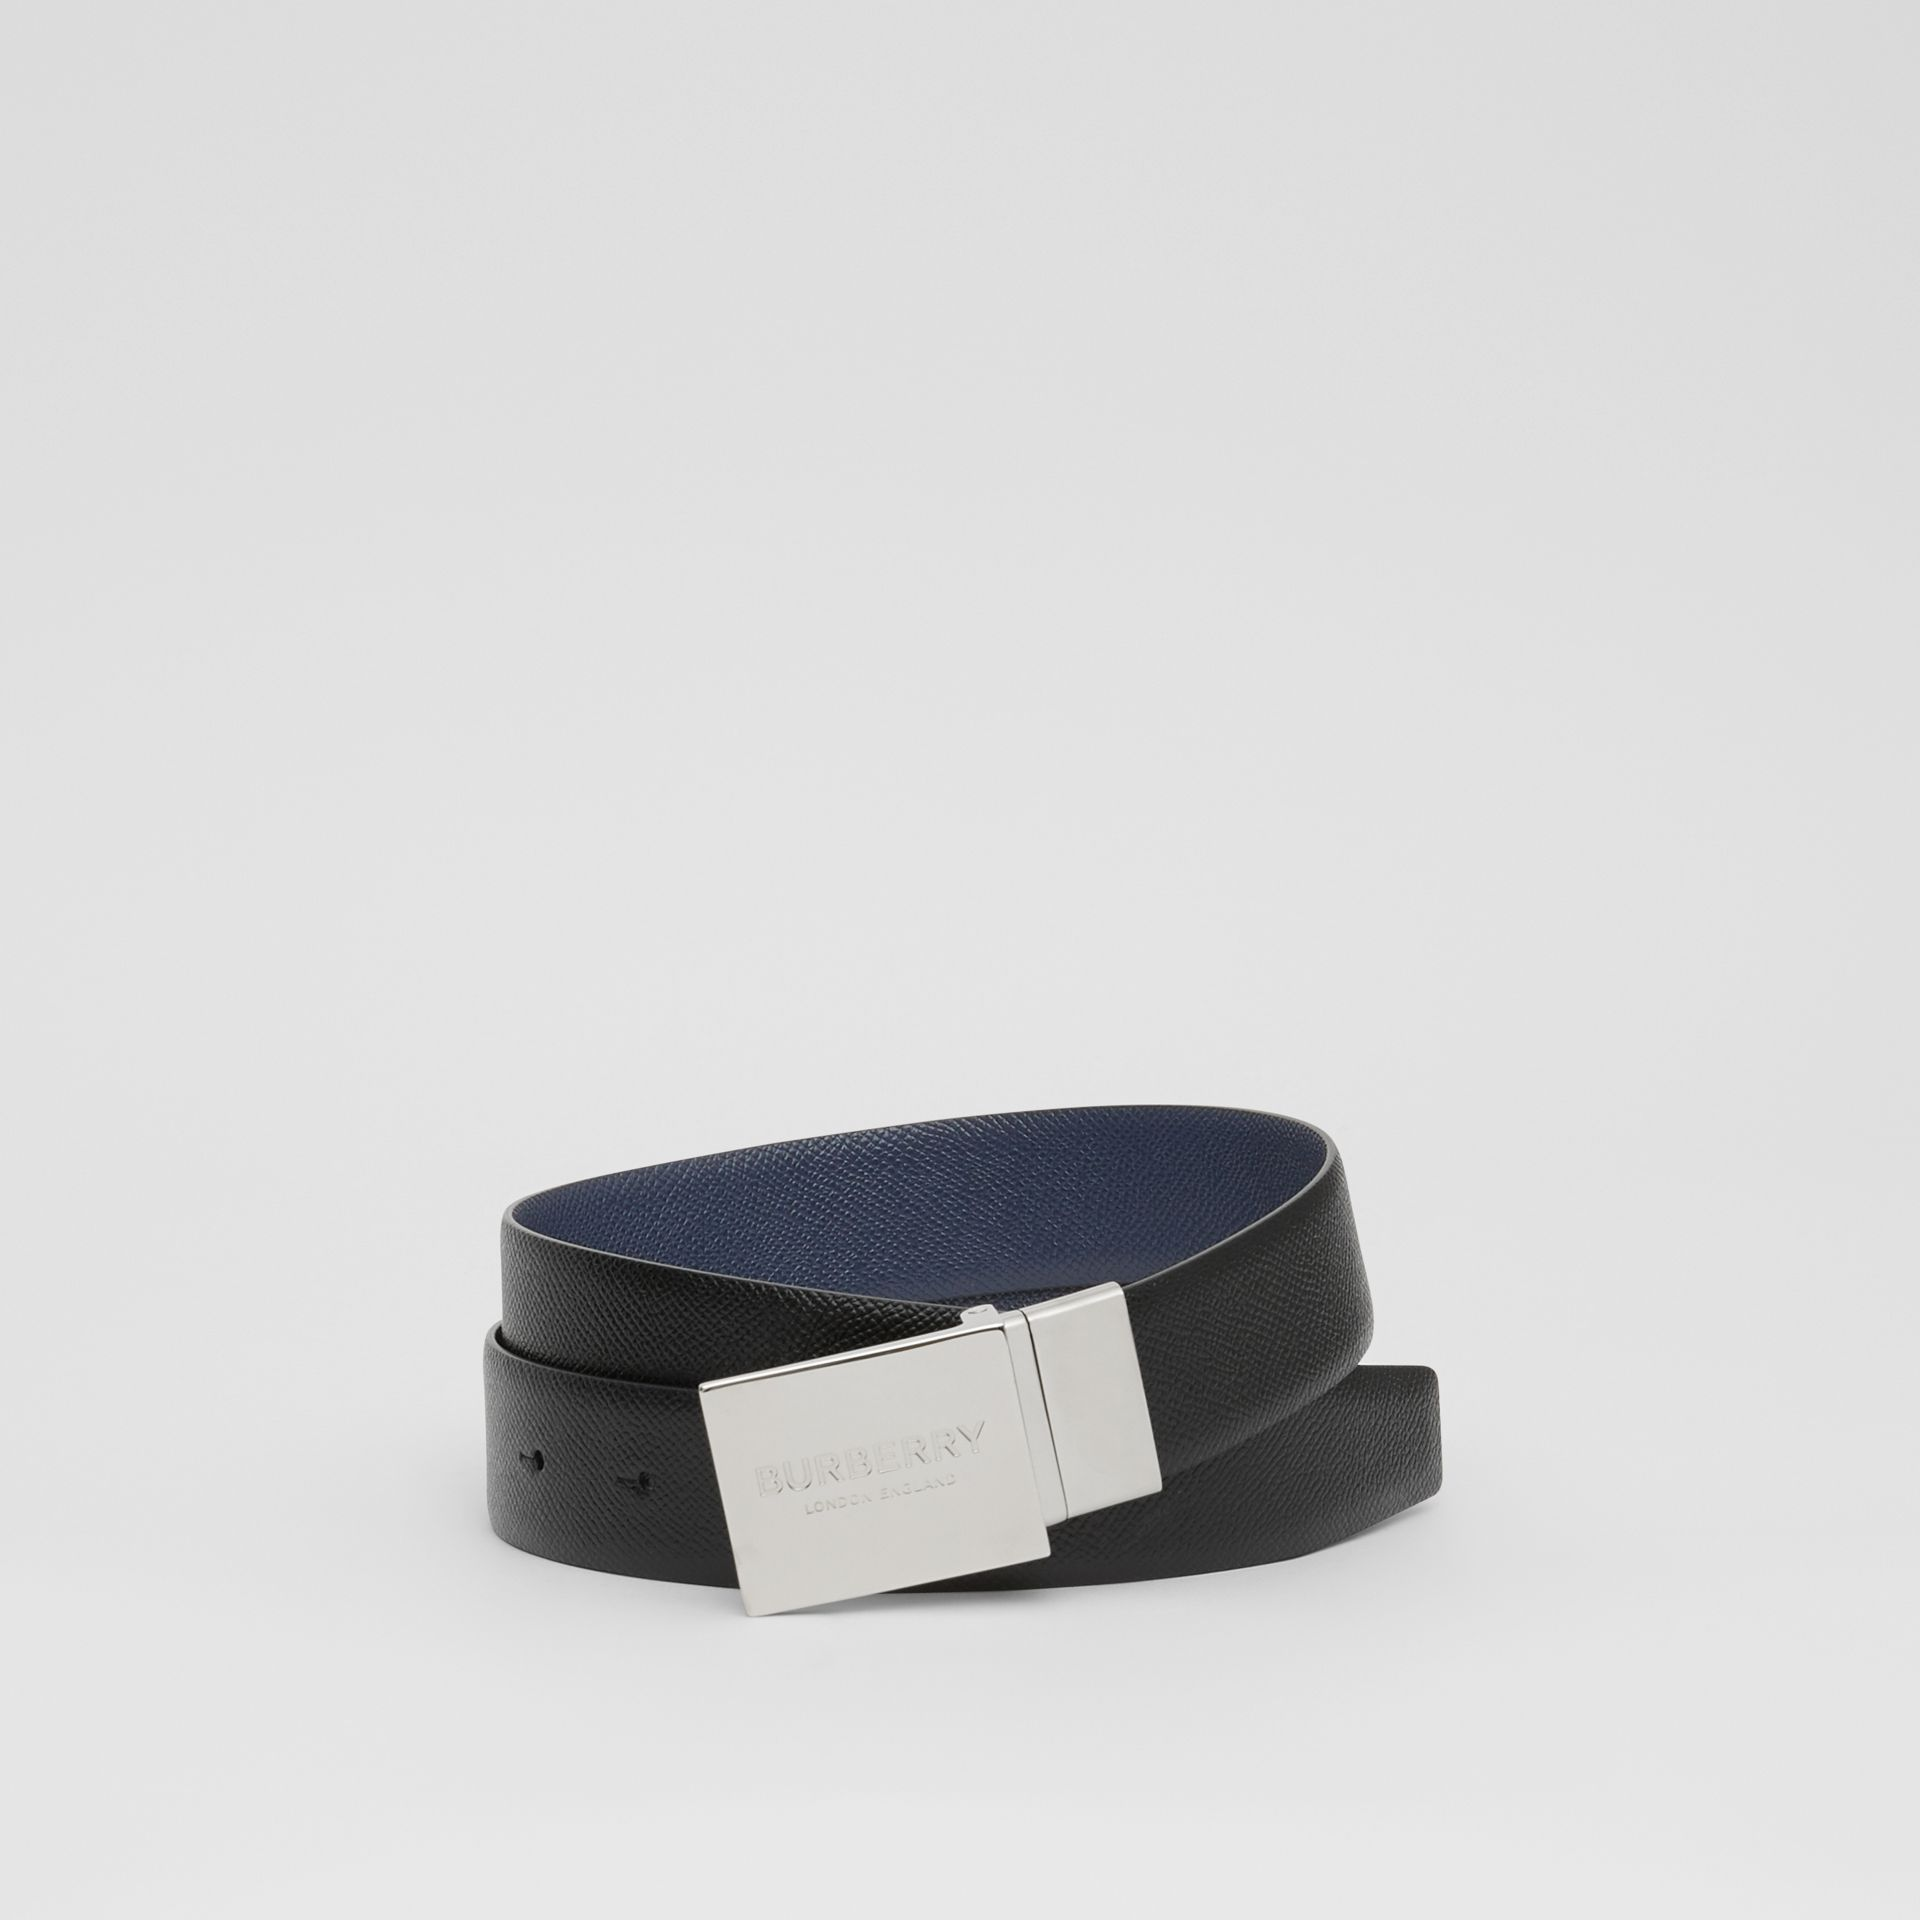 Reversible Plaque Buckle Grainy Leather Belt in Black/navy - Men | Burberry United Kingdom - gallery image 0